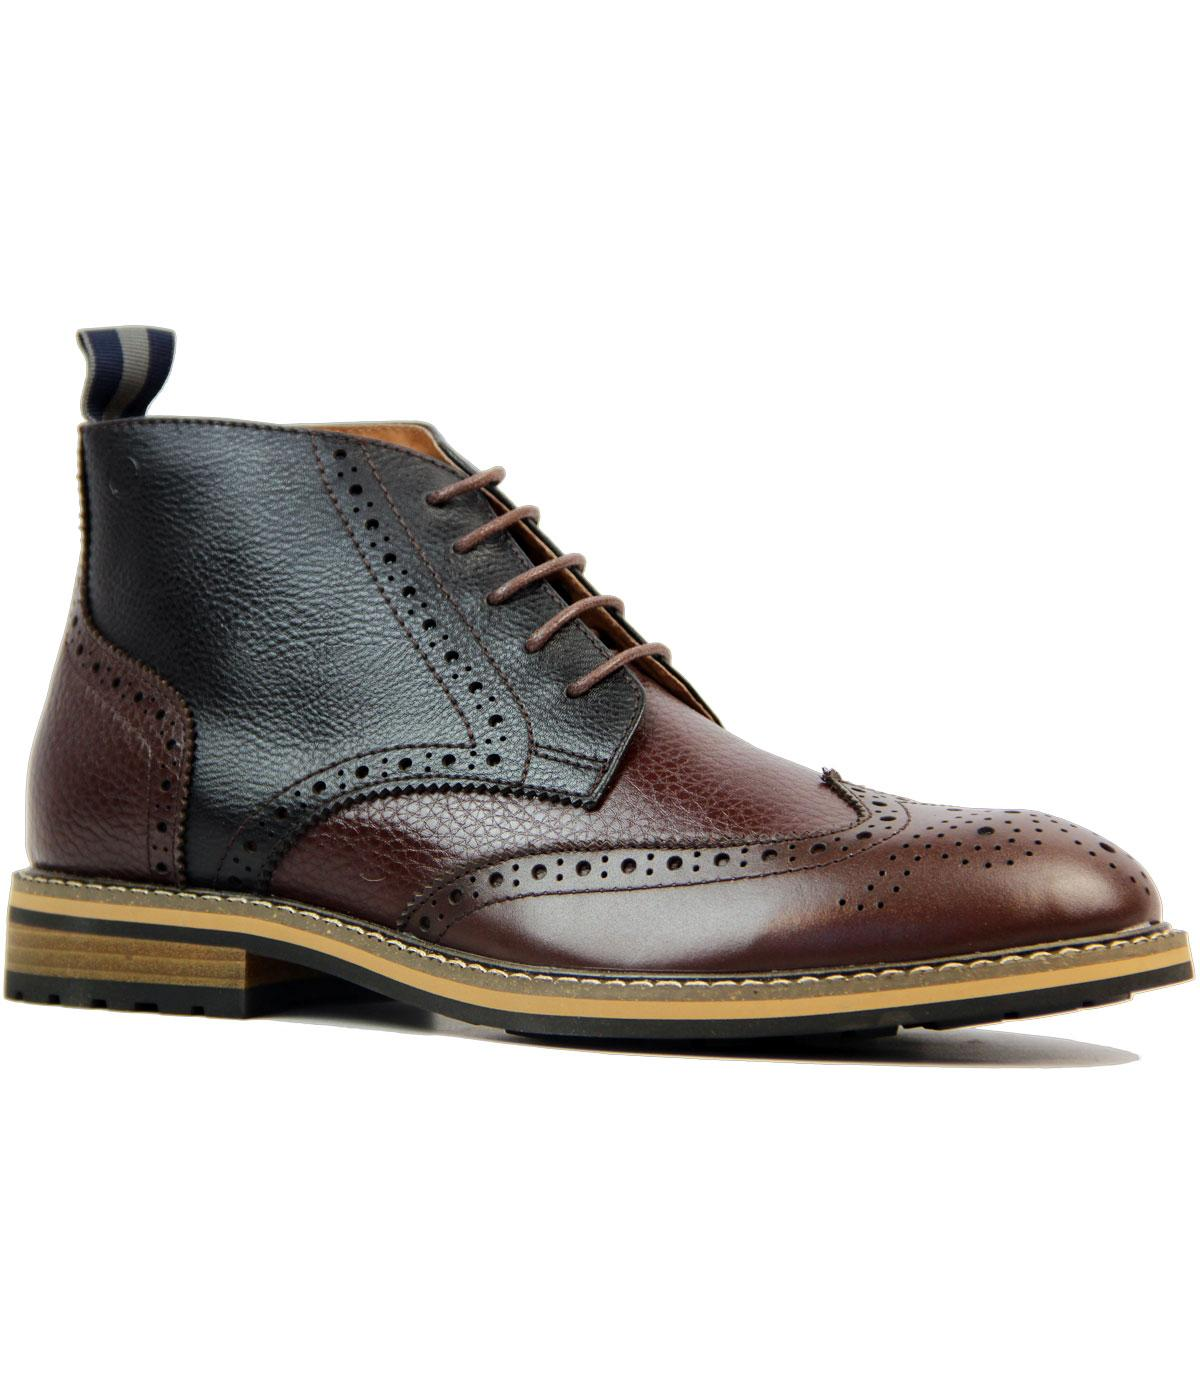 Turnmill PETER WERTH Leather Brogue Chukka Boots